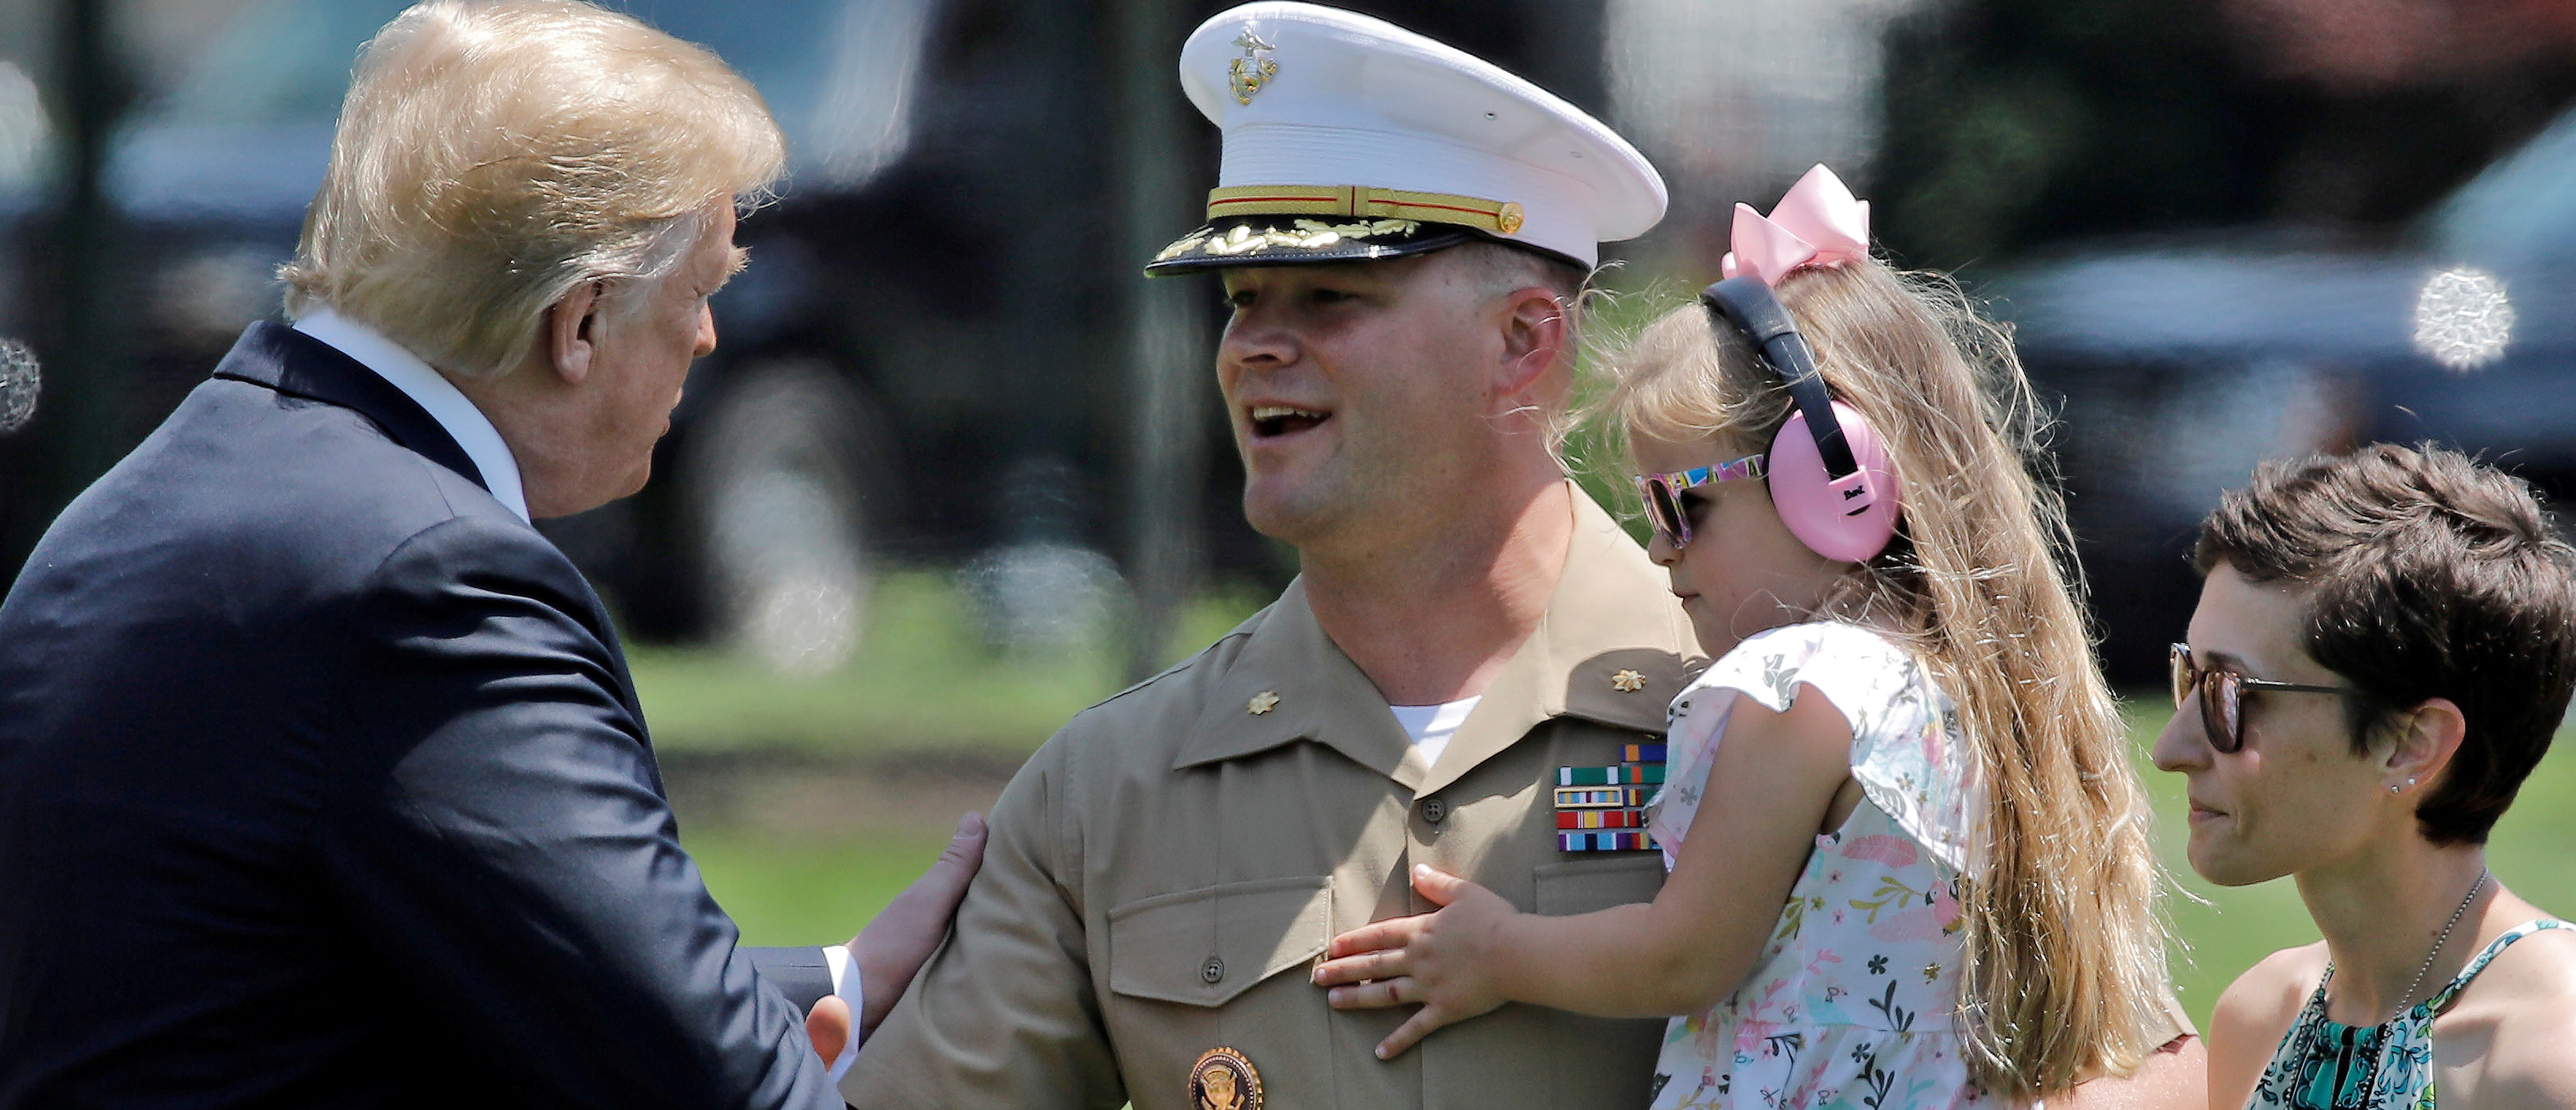 U.S. President Donald Trump greets Marine One pilot Major Adam Horne and his family during Horne's last day on the job after returning from a trip to Annapolis, Maryland, in Washington, U.S. May 25, 2018. REUTERS/Carlos Barria - RC12CCE93000